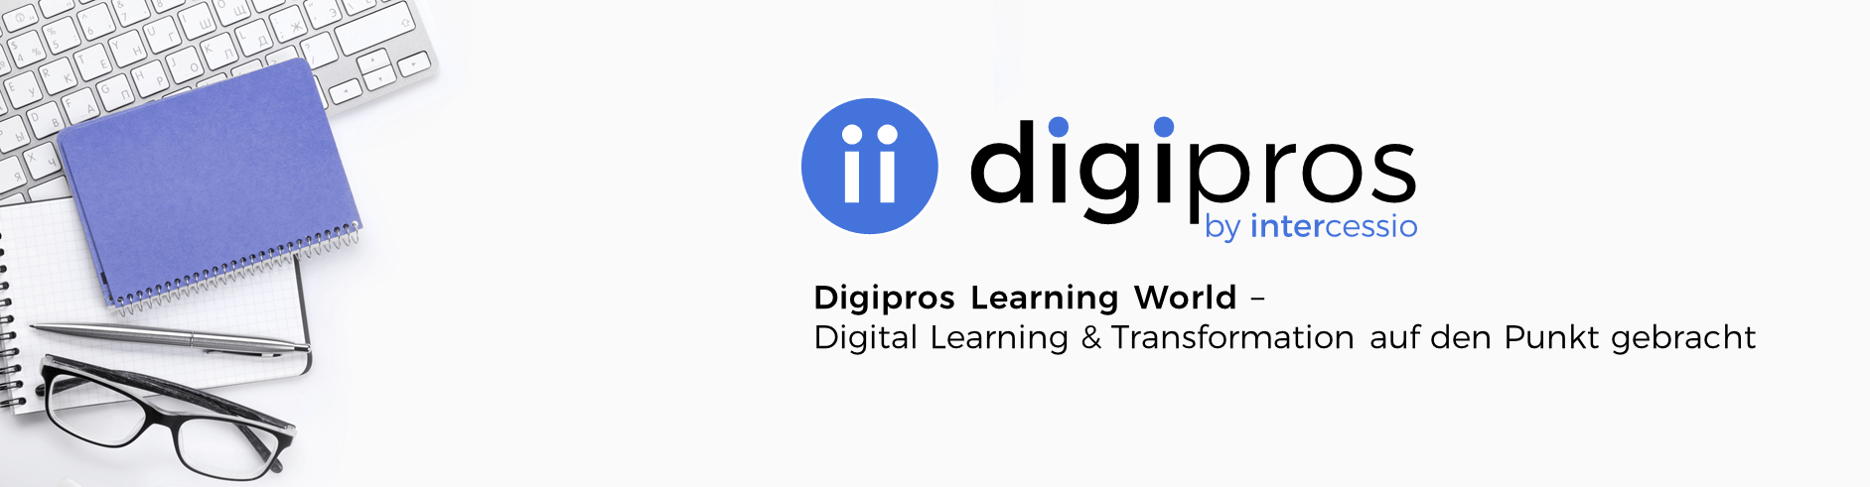 digipros learning world by intercessio - Learning auf den Punkt gebracht